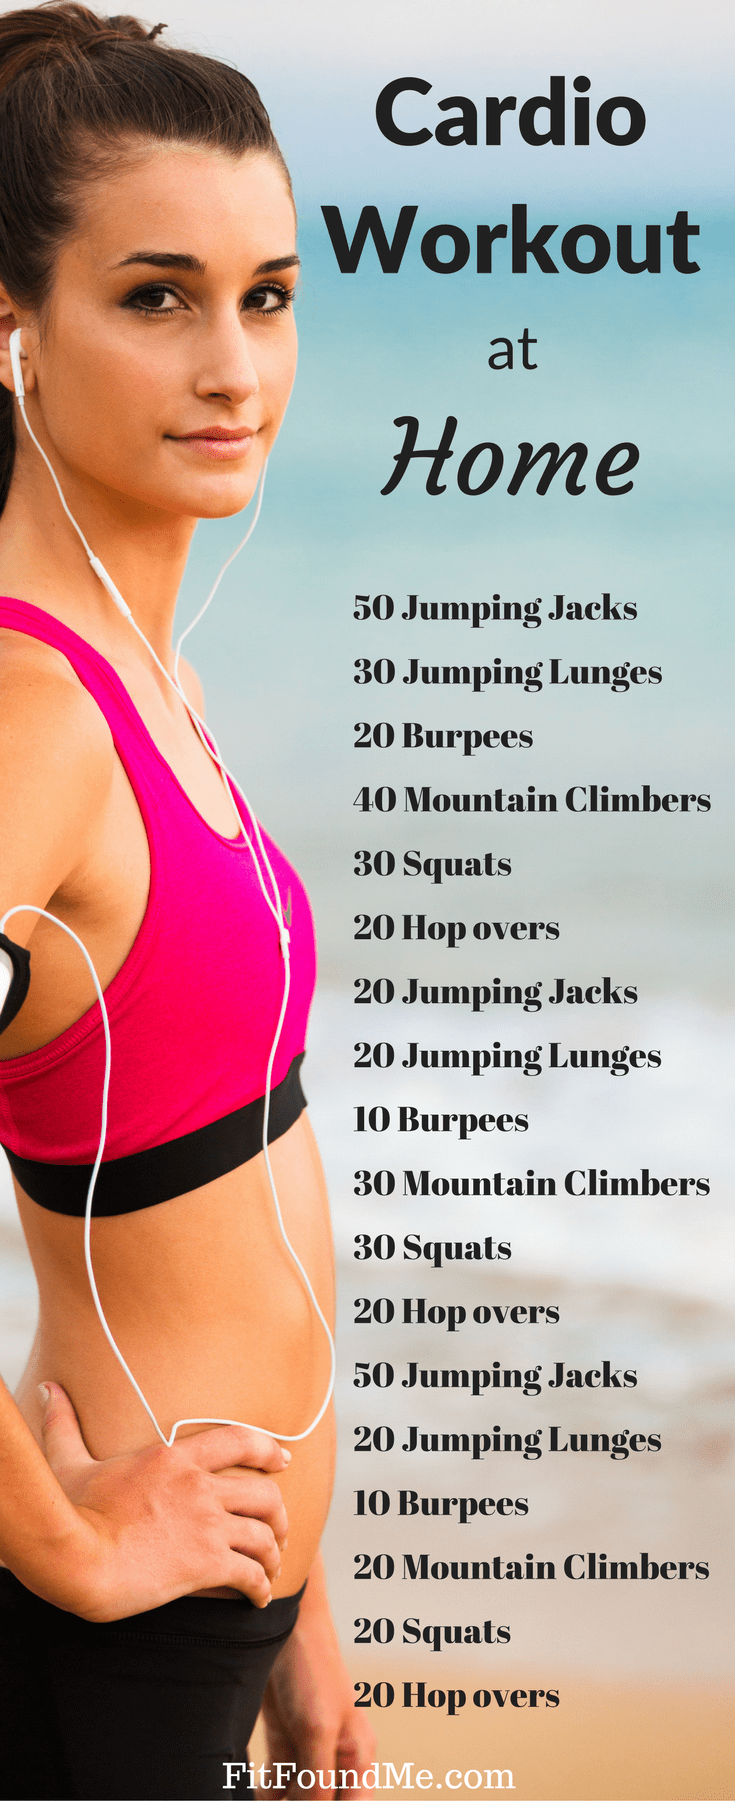 No excuses allowed today. Thiscardio workout for womenis where the fat burn happens. Calories are waiting for you to burn them away with this30 minute indoor no equipment cardio workout. Fitness for women over 40 should be a priority and this workout will help you fit it into your busy schedule.